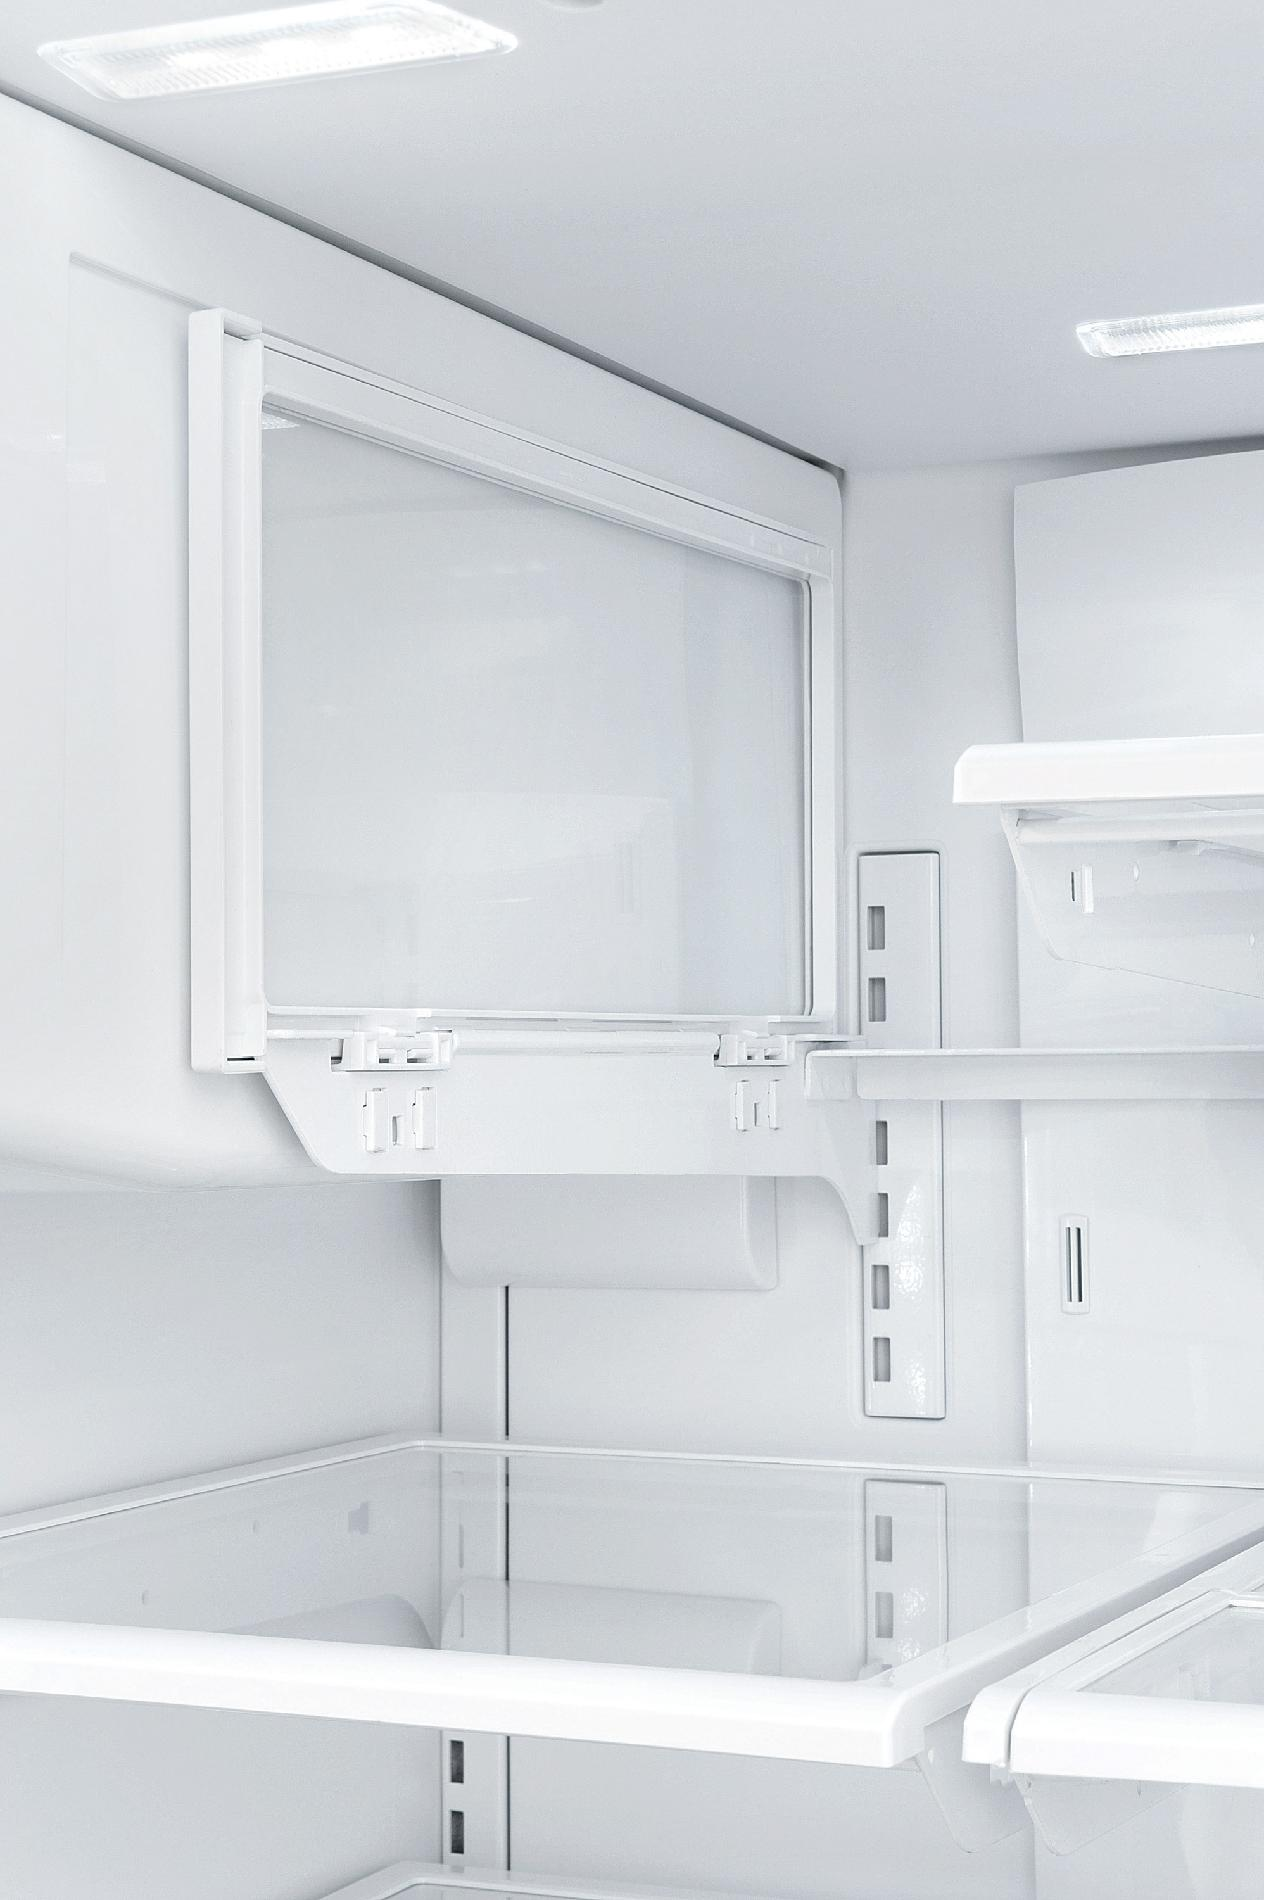 Frigidaire Professional 22.6 cu. ft. Counter-Depth French Door Refrigerator - Stainless Steel